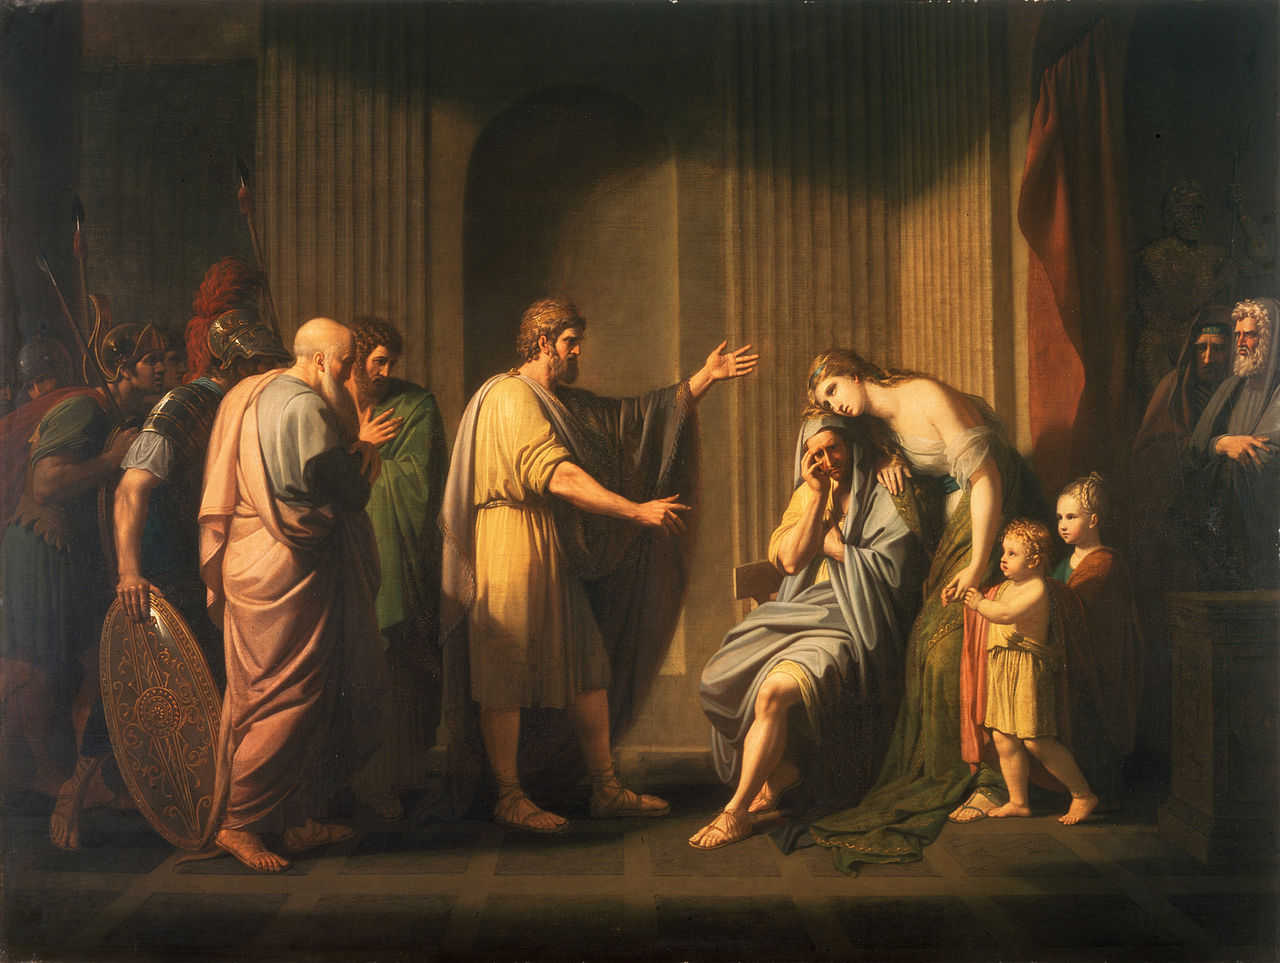 Benjamin West: Cleombrotus Ordered into Banishment by Leonidas II, King of Sparta